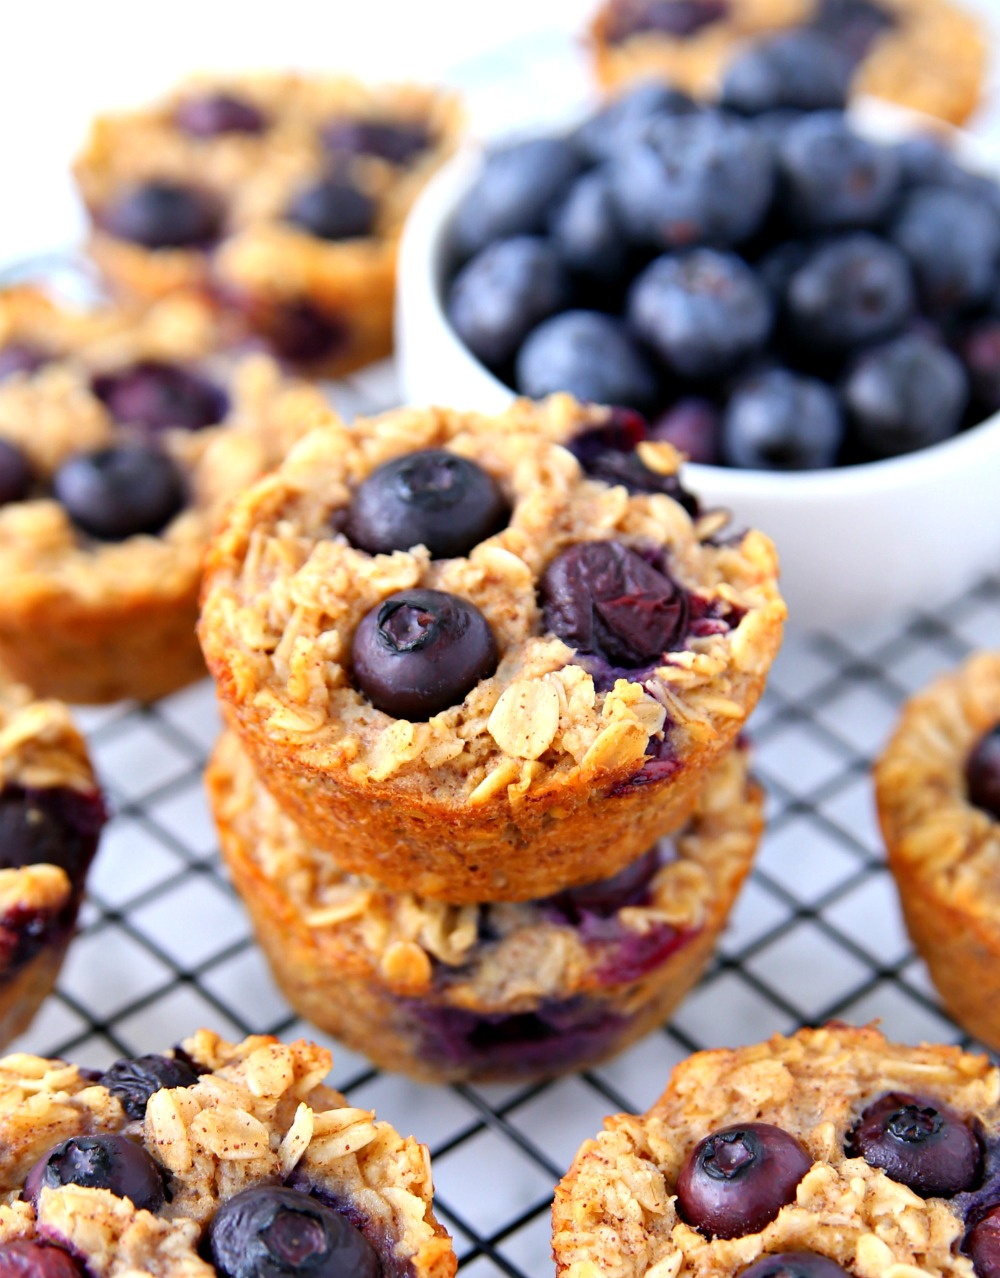 Blueberry Oatmeal Cups made with blueberries, oatmeal, bananas and other clean ingredients